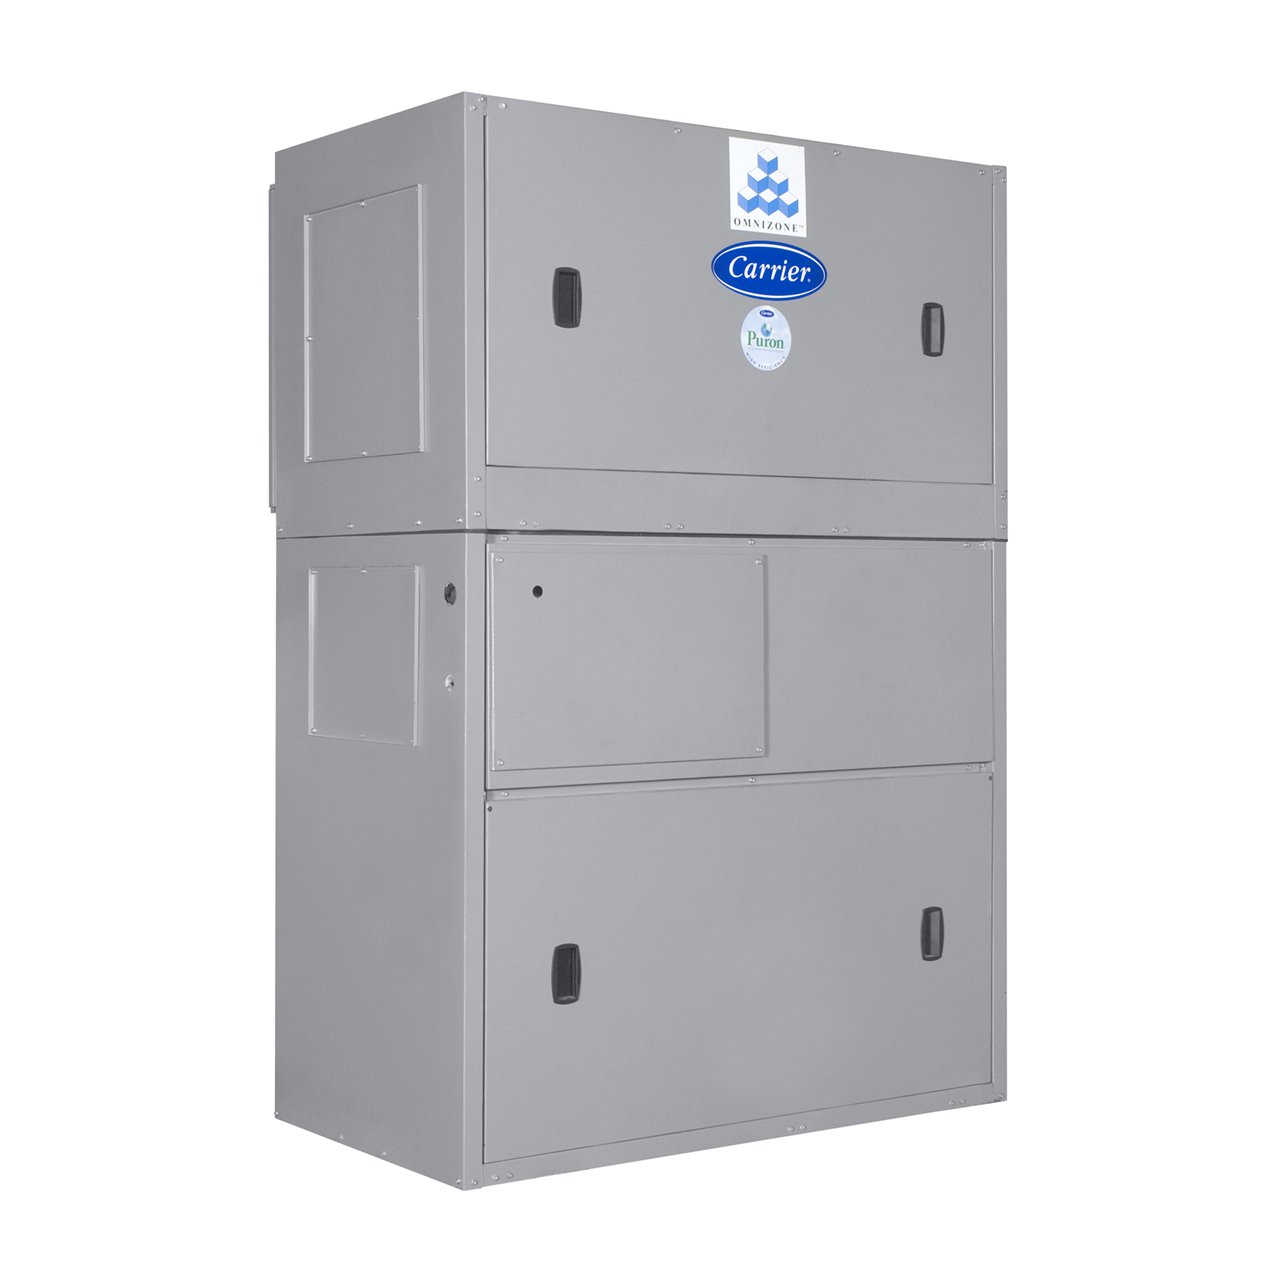 carrier-50xcr-remote-air-cooled-constant-volume-indoor-self-contained-unit